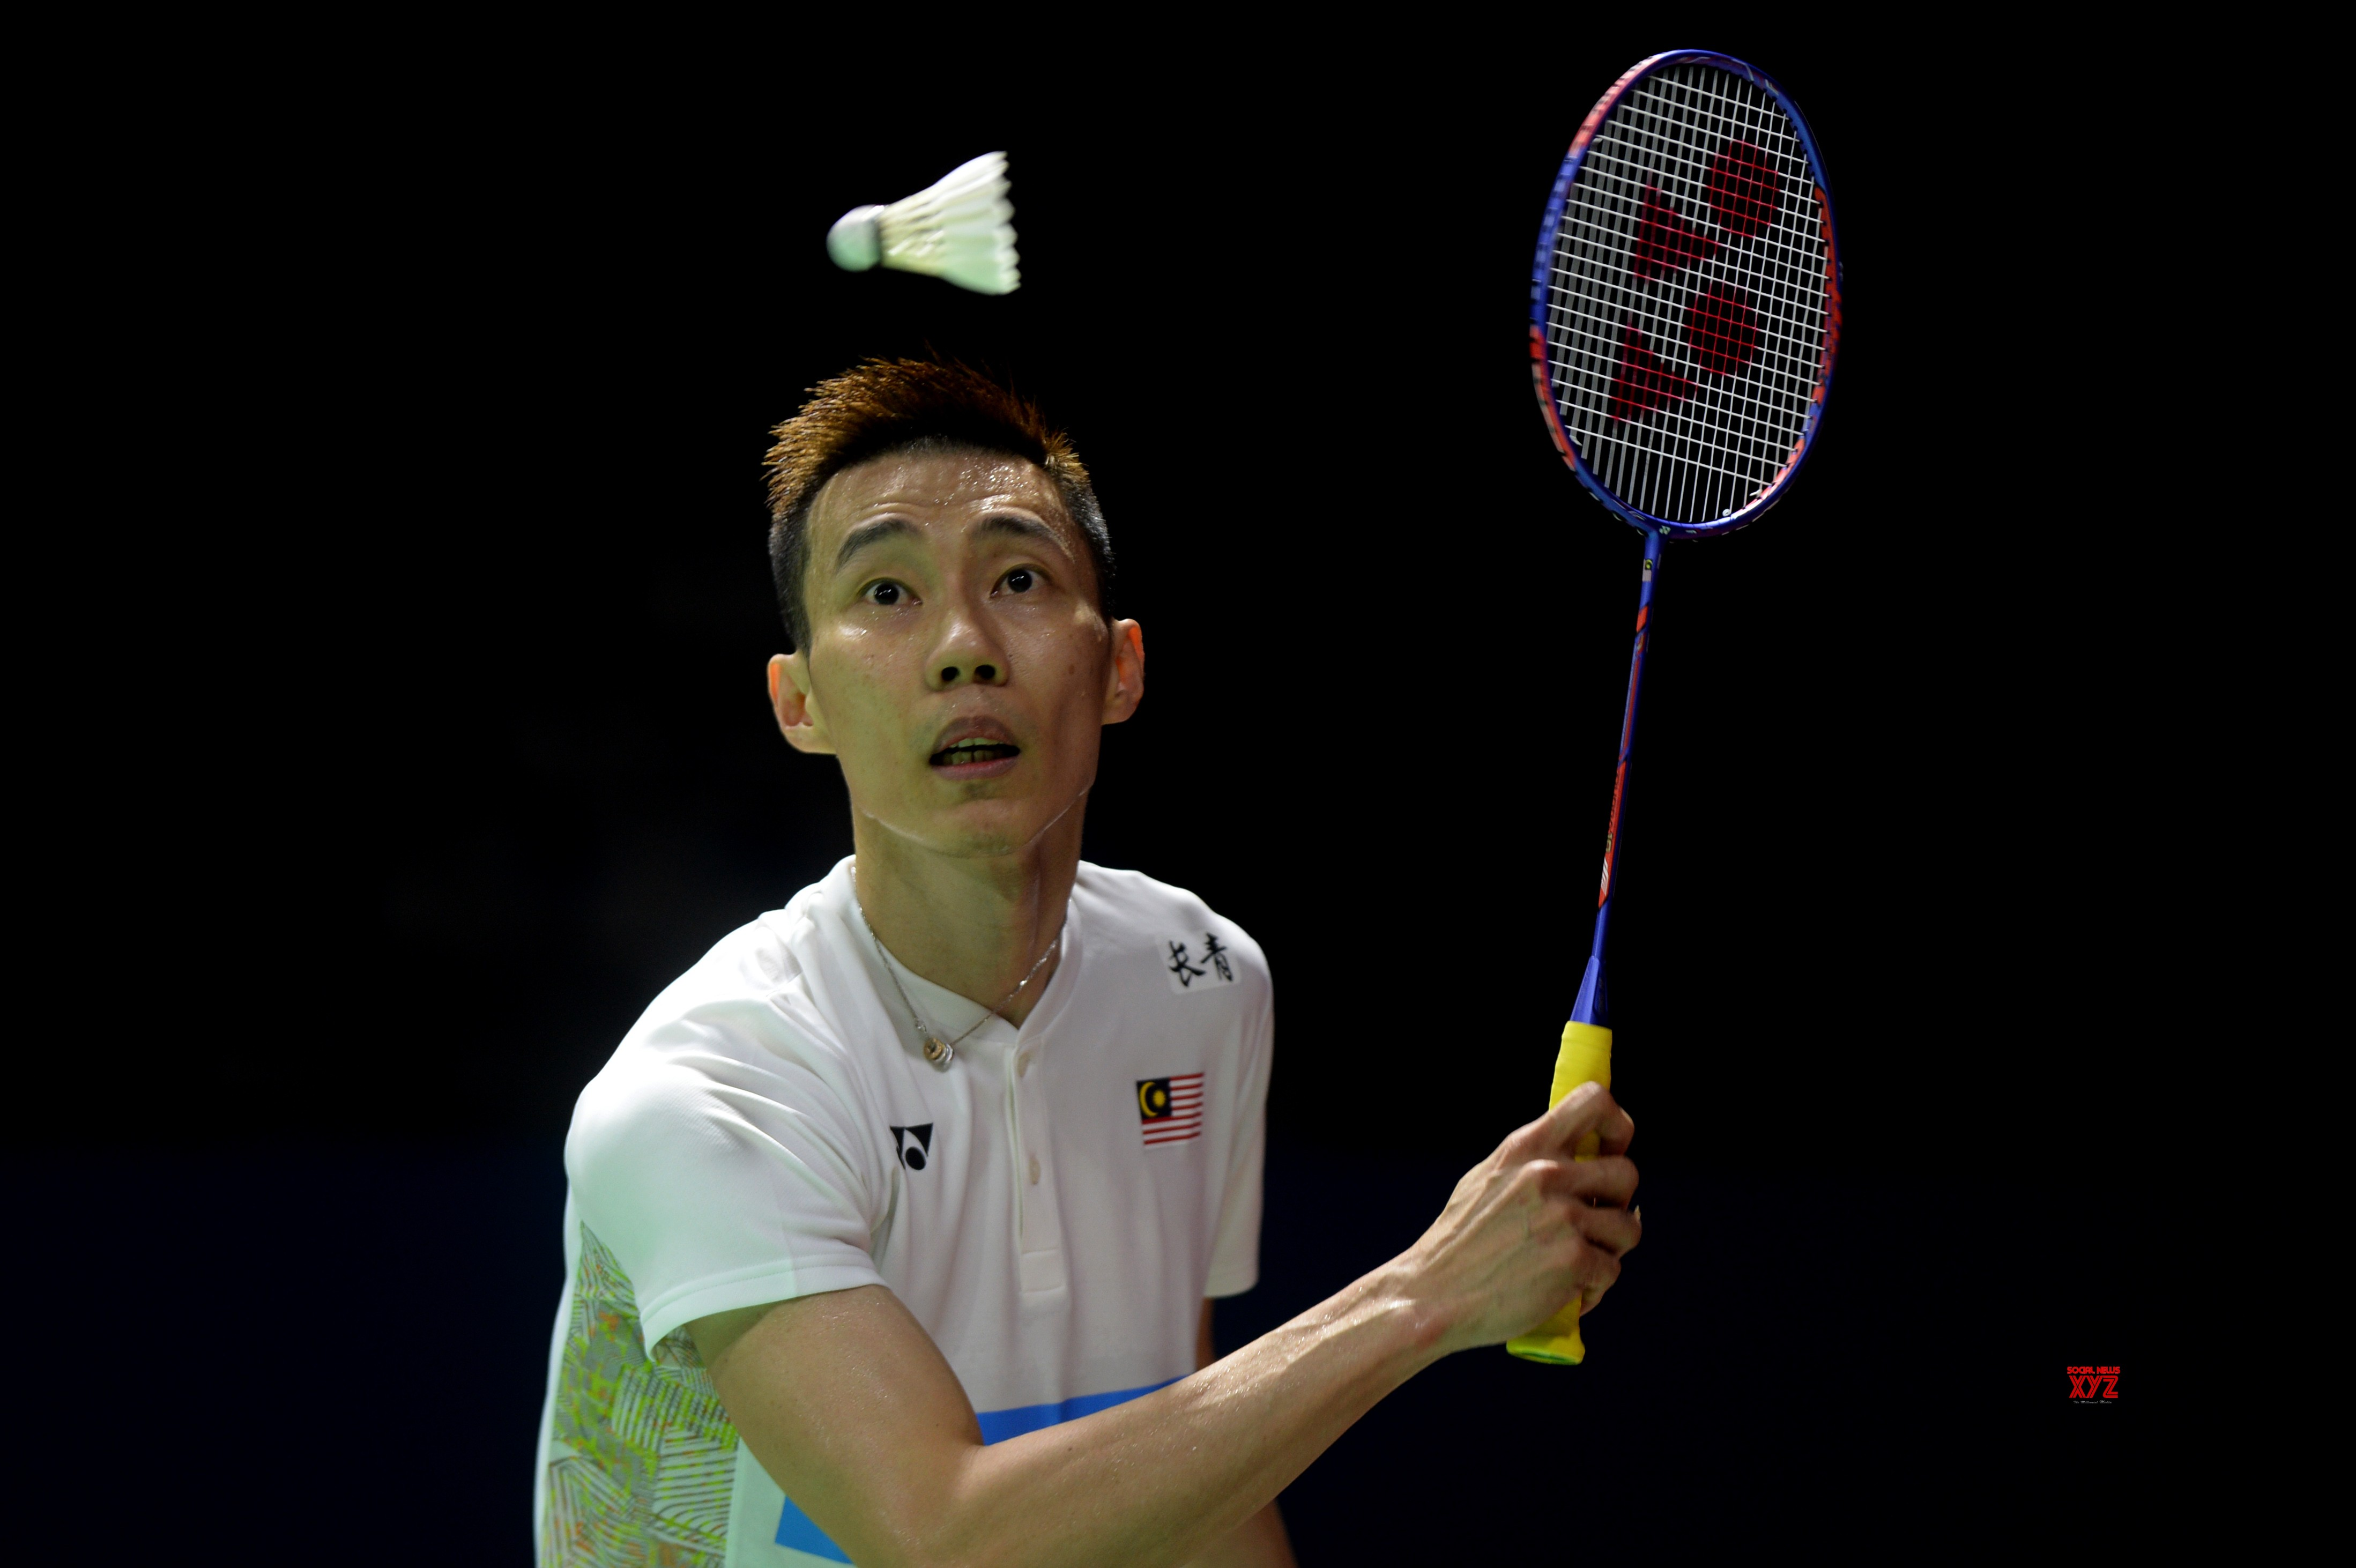 Badminton legend Lee Chong Wei announces retirement